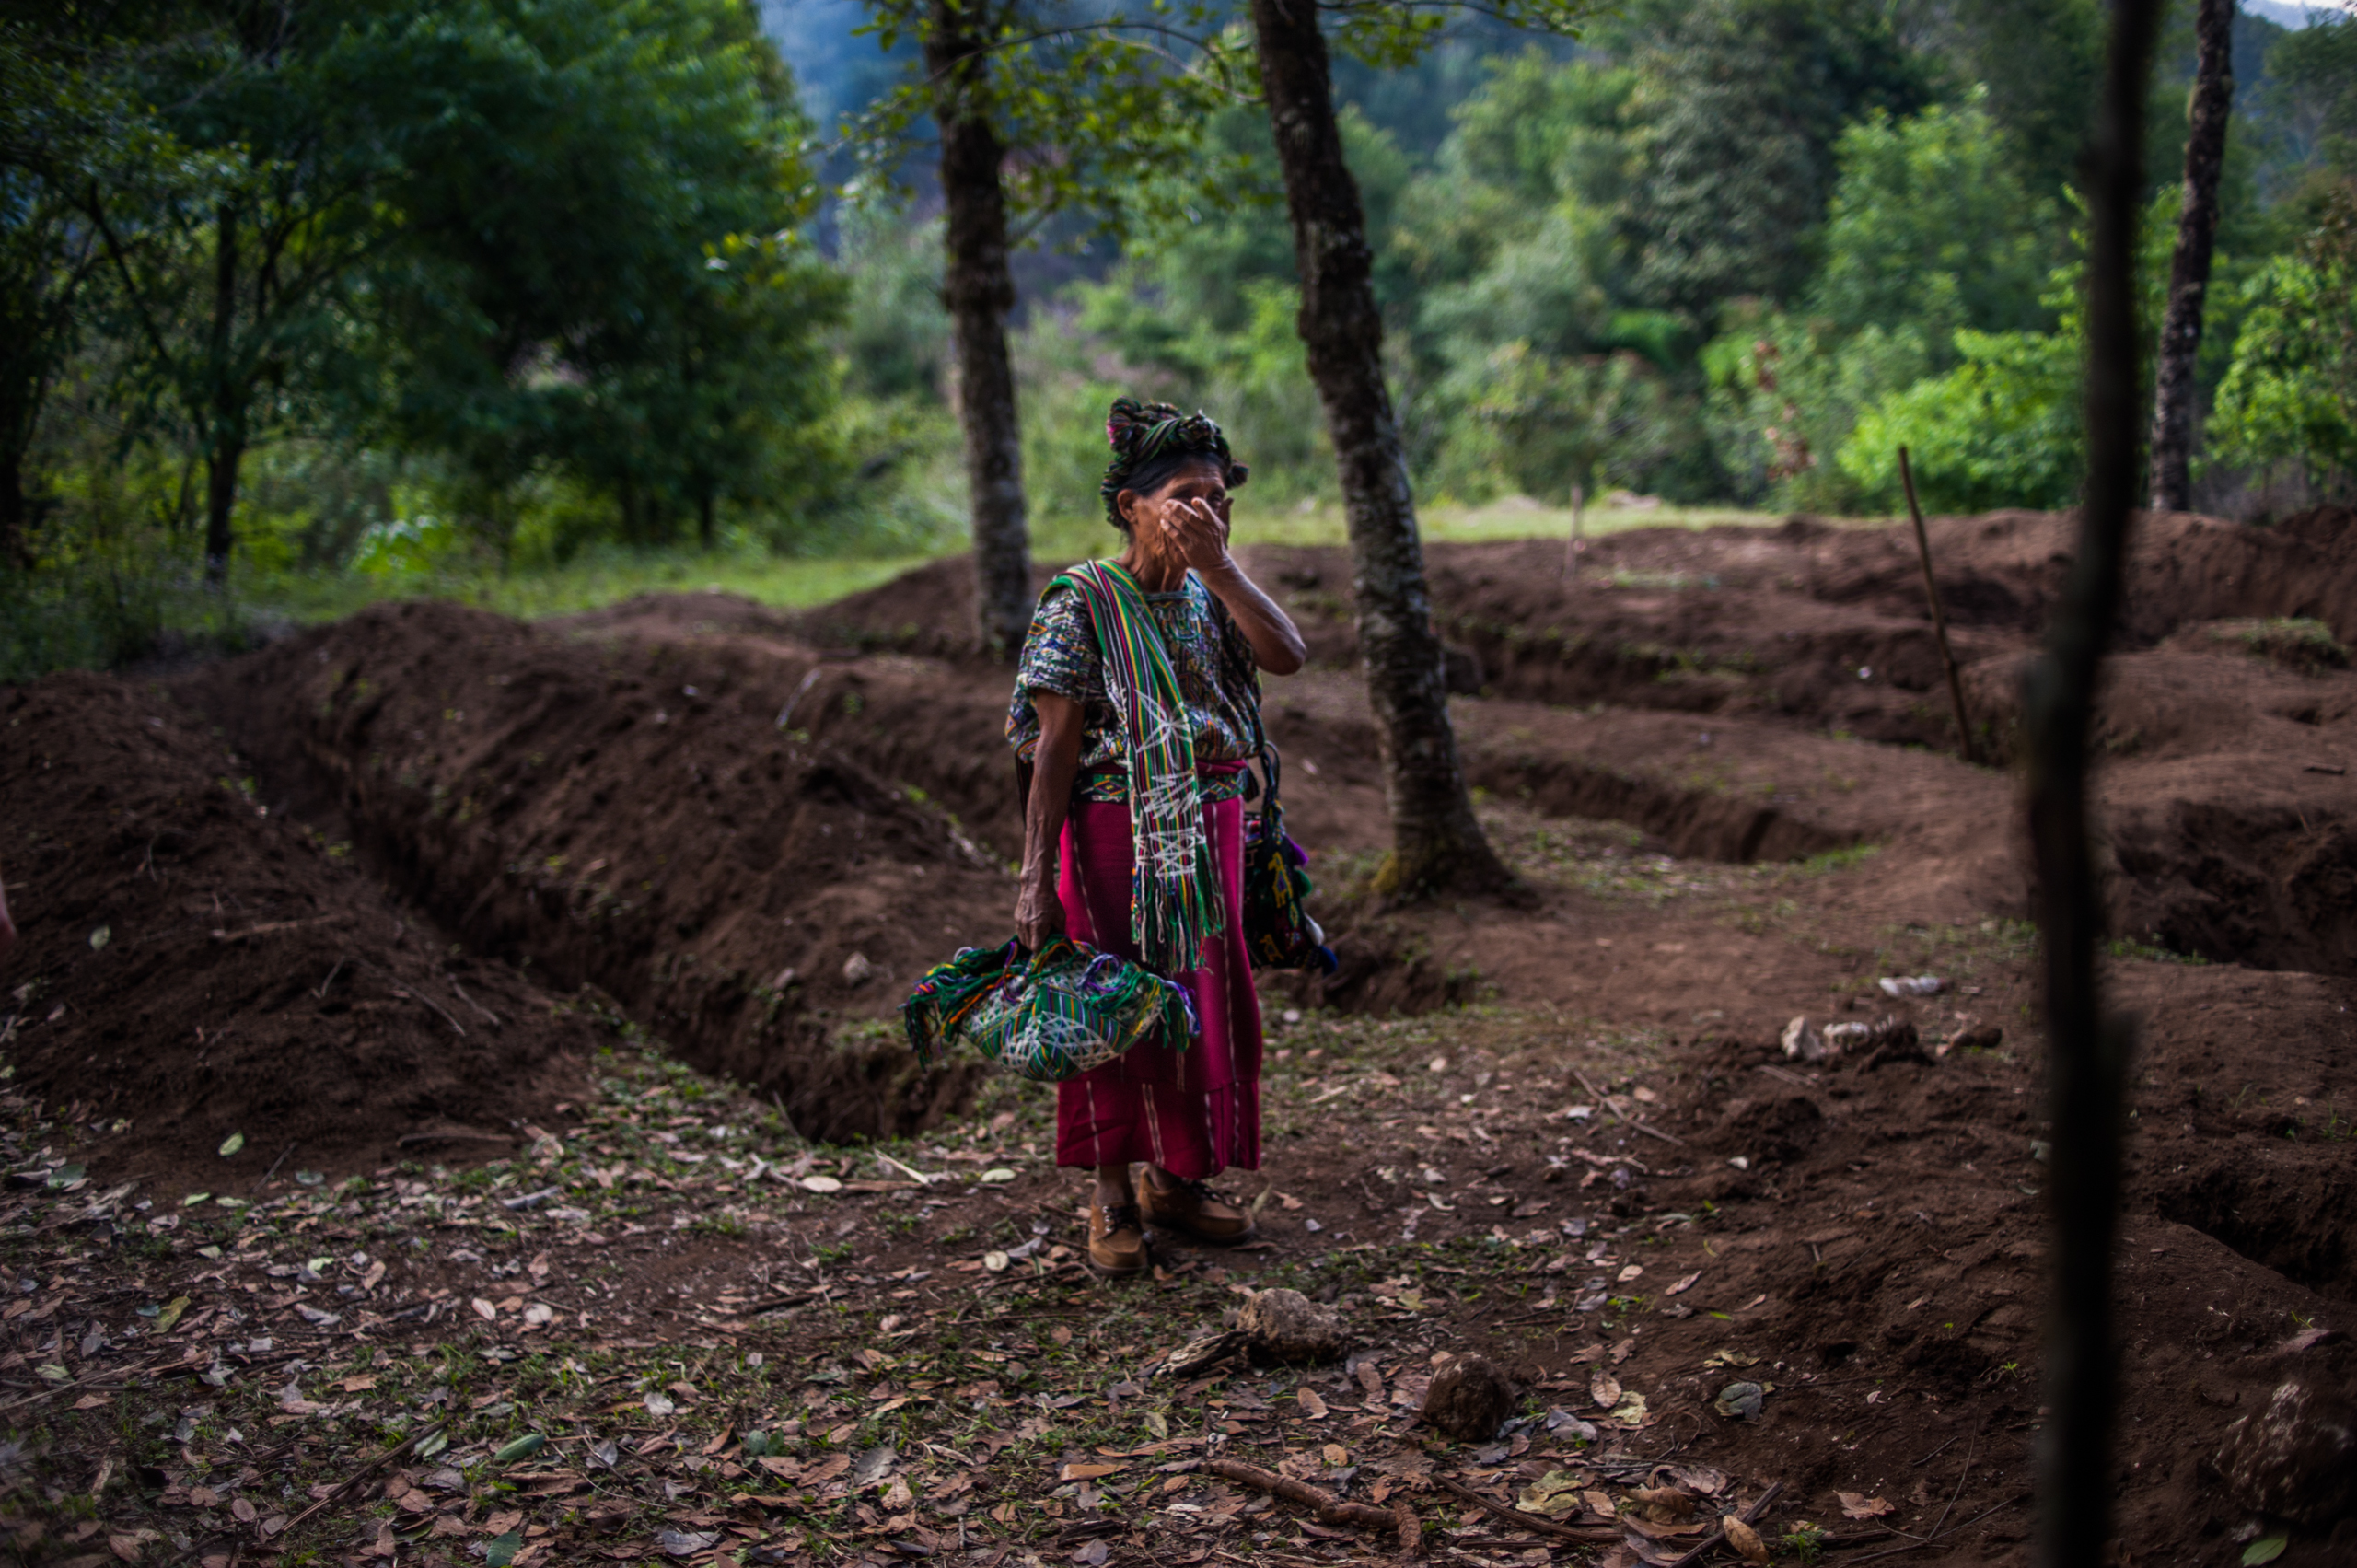 Feliciana Bernal stands between the trenches dug by forensic anthropologists in Xe'Xuxcap, Nebaj. She is looking for her one year-old son, who died over 30 years ago.